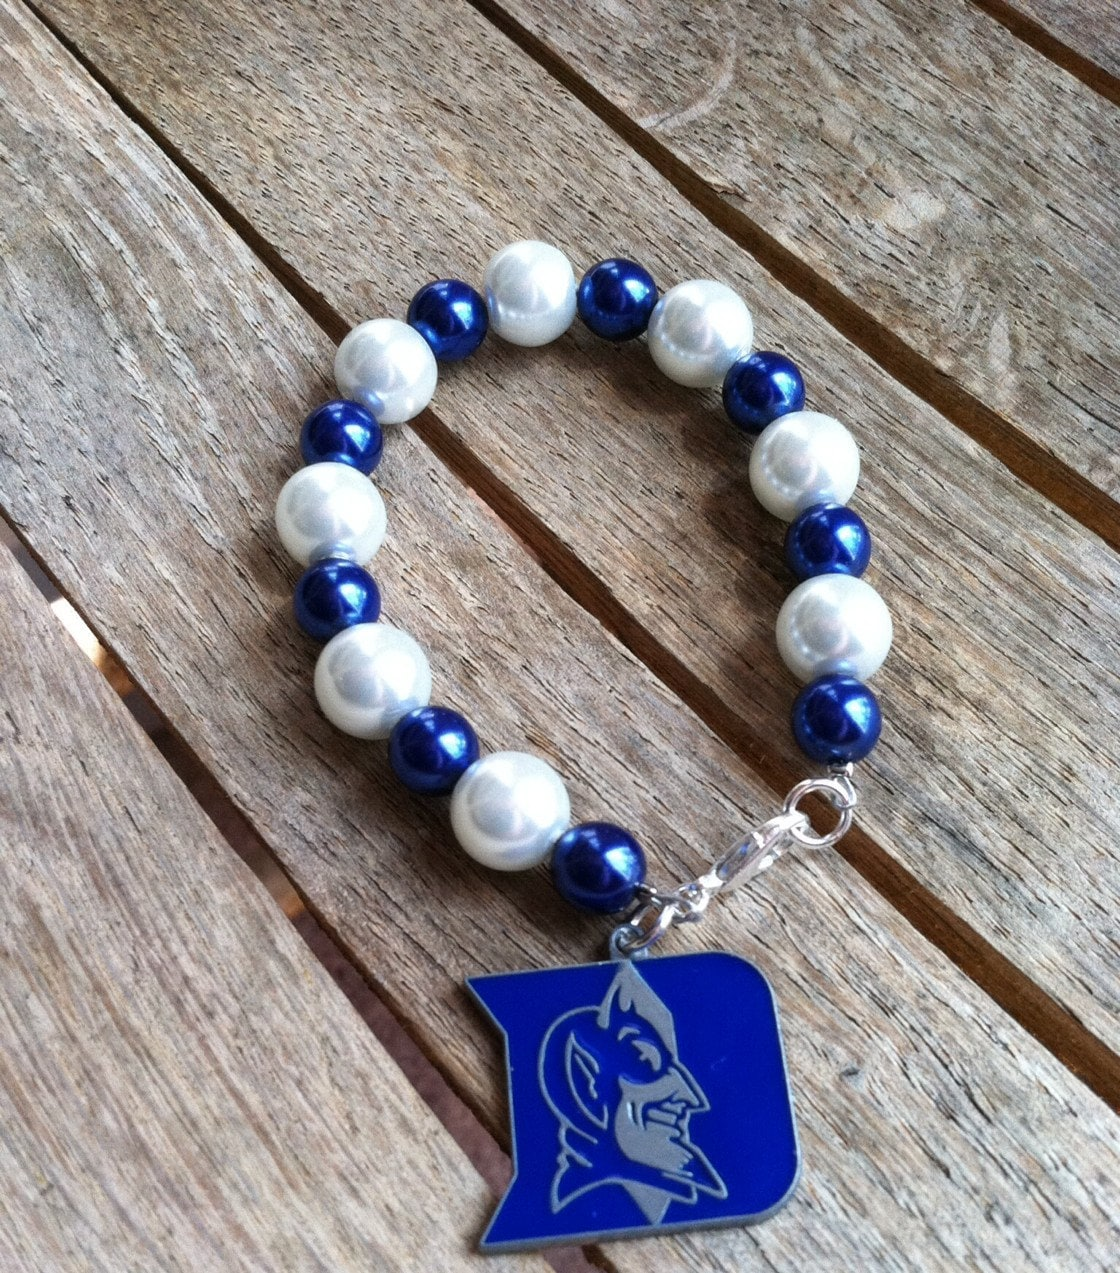 acc handmade ncaa teams beaded charm bracelet br 111014 03. Black Bedroom Furniture Sets. Home Design Ideas